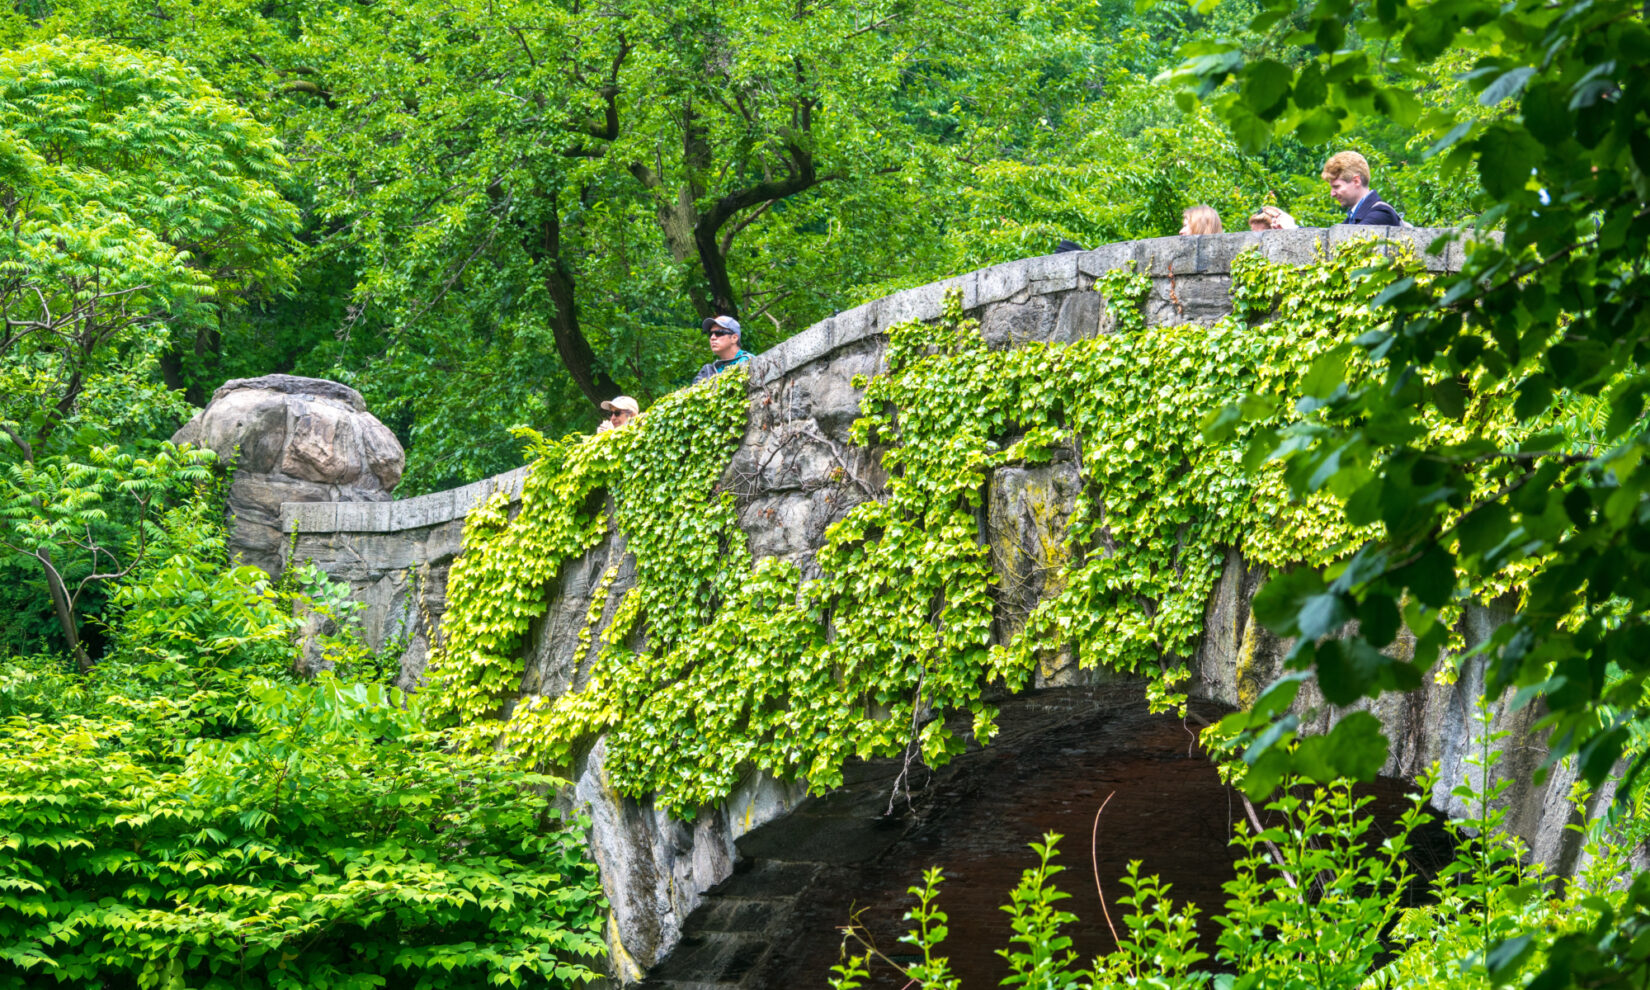 The bridge is camouflaged by ivy and leafy branches.